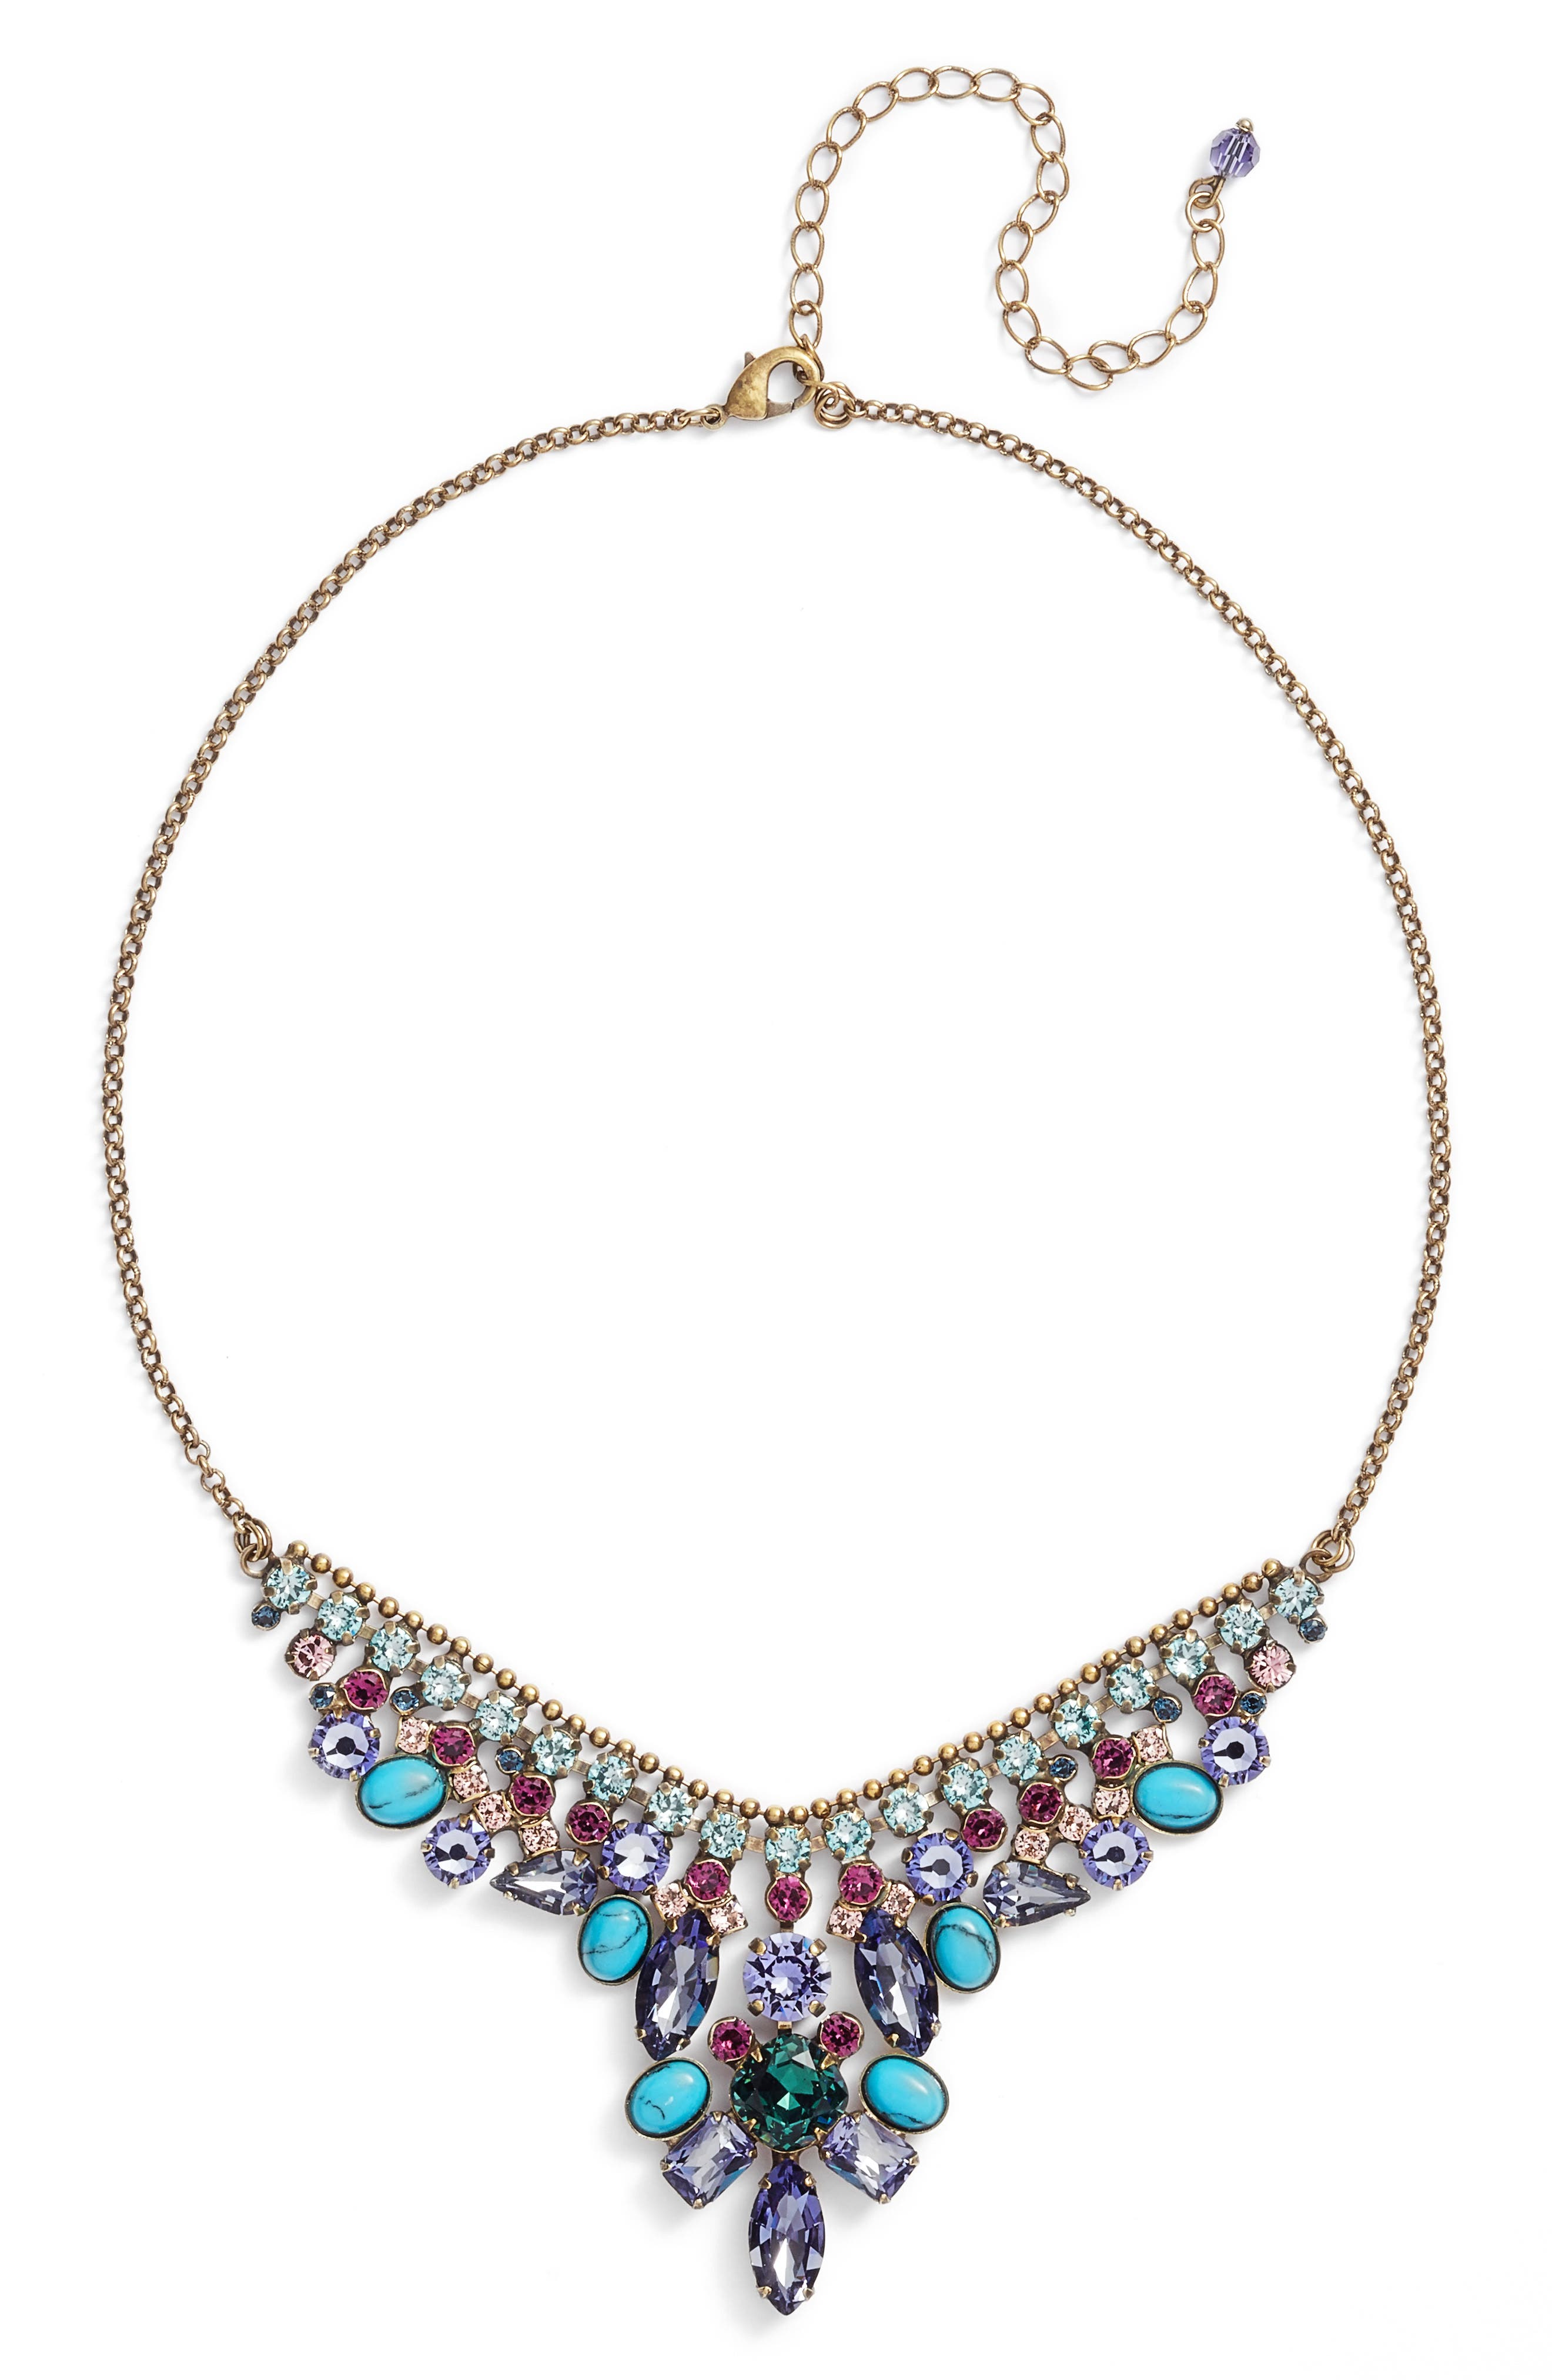 Vervain Frontal Necklace,                         Main,                         color, Multi